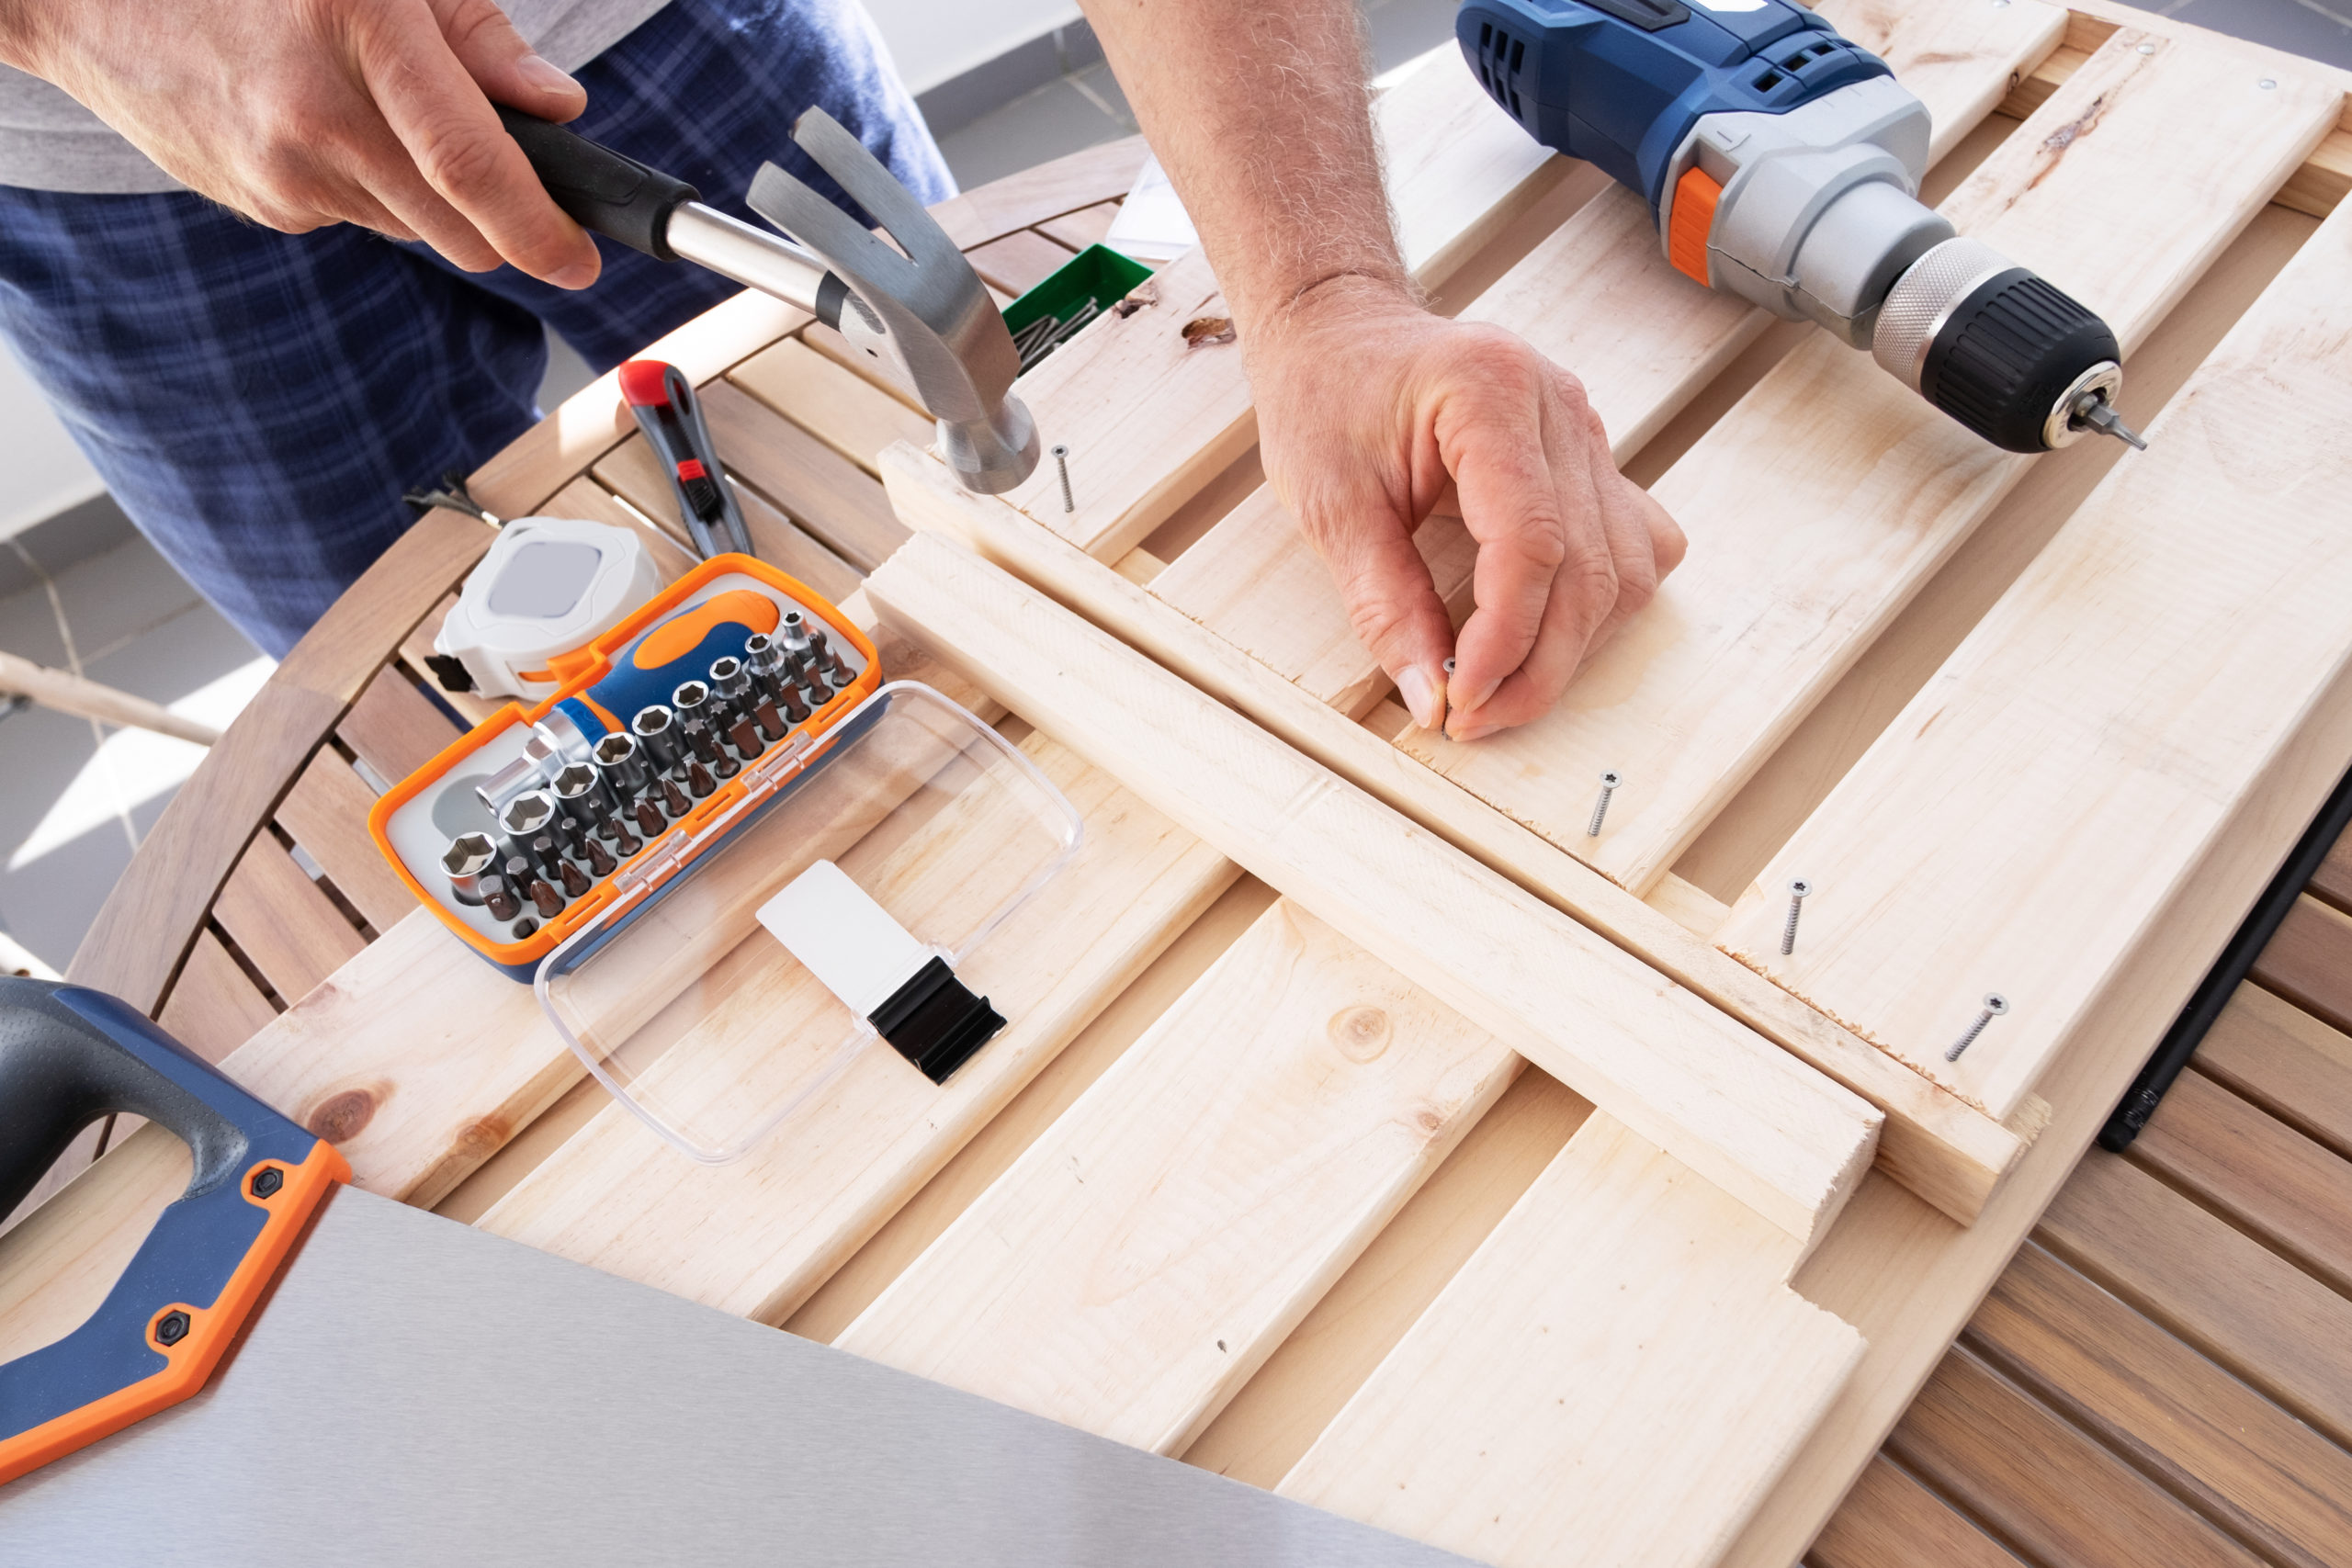 Hands driving nail with hammer into wooden shelf laying on round table. Craftsman working at balcony during self-isolation. House improving, DIY and home decoration during quarantine concept